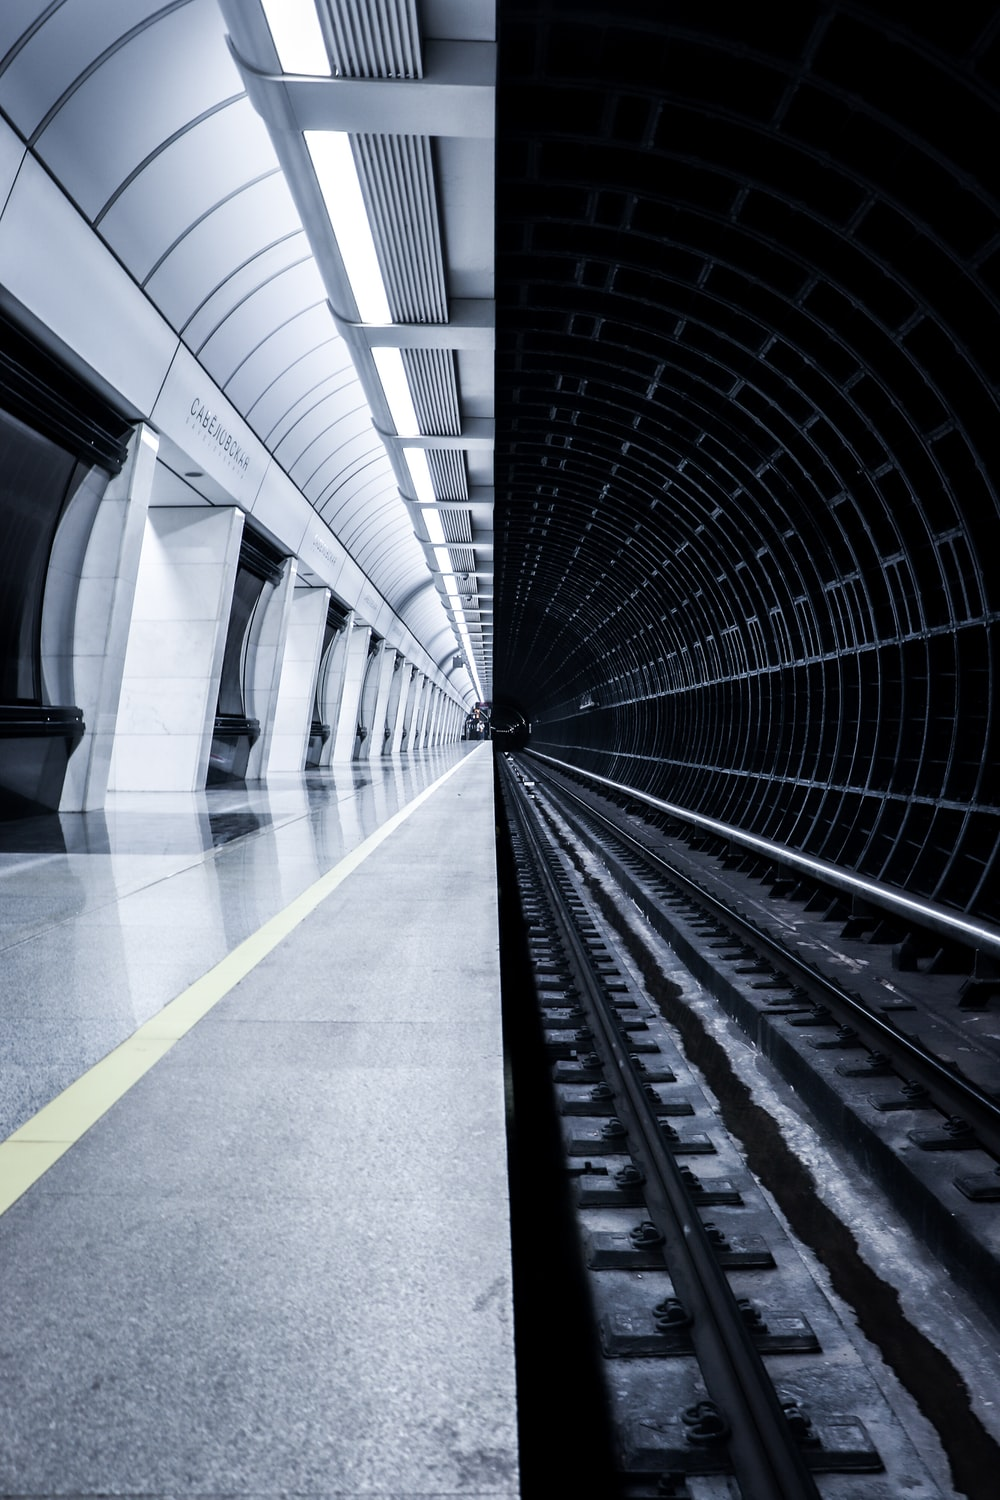 grayscale photography of train station with no people